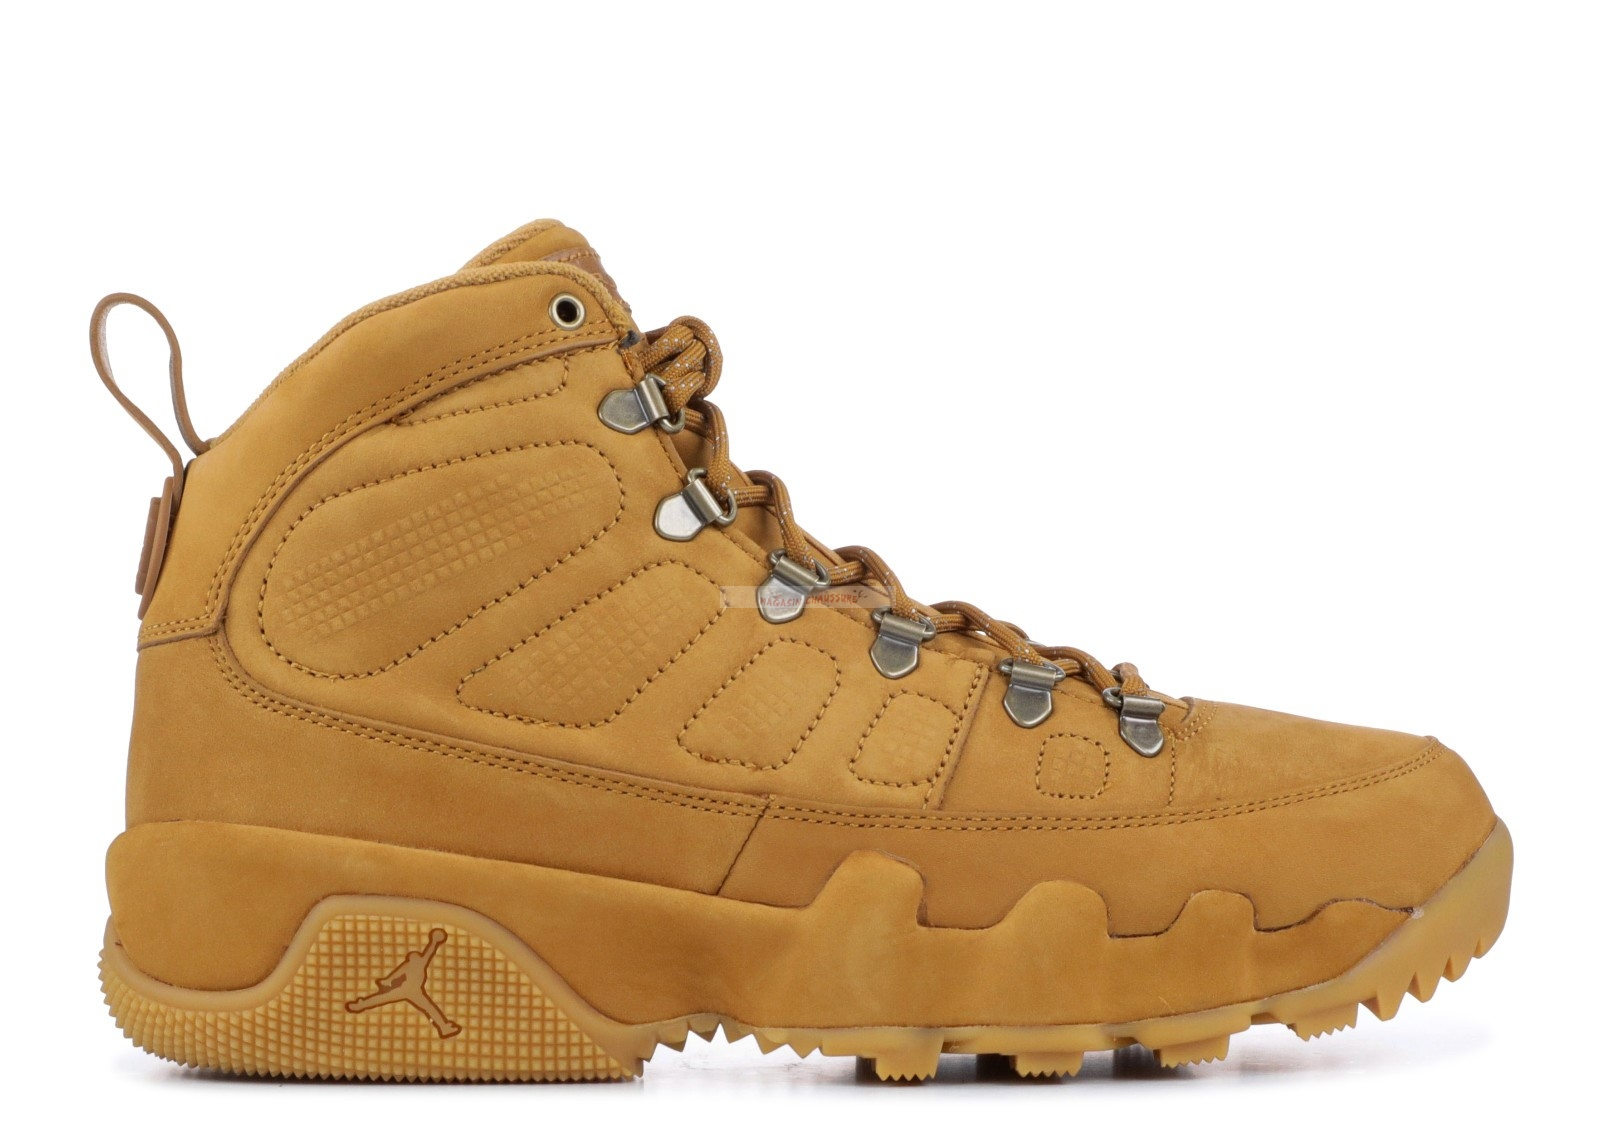 Air Jordan 9 Retro Boot Nrg Marron (ar4491-700) Chaussure de Basket